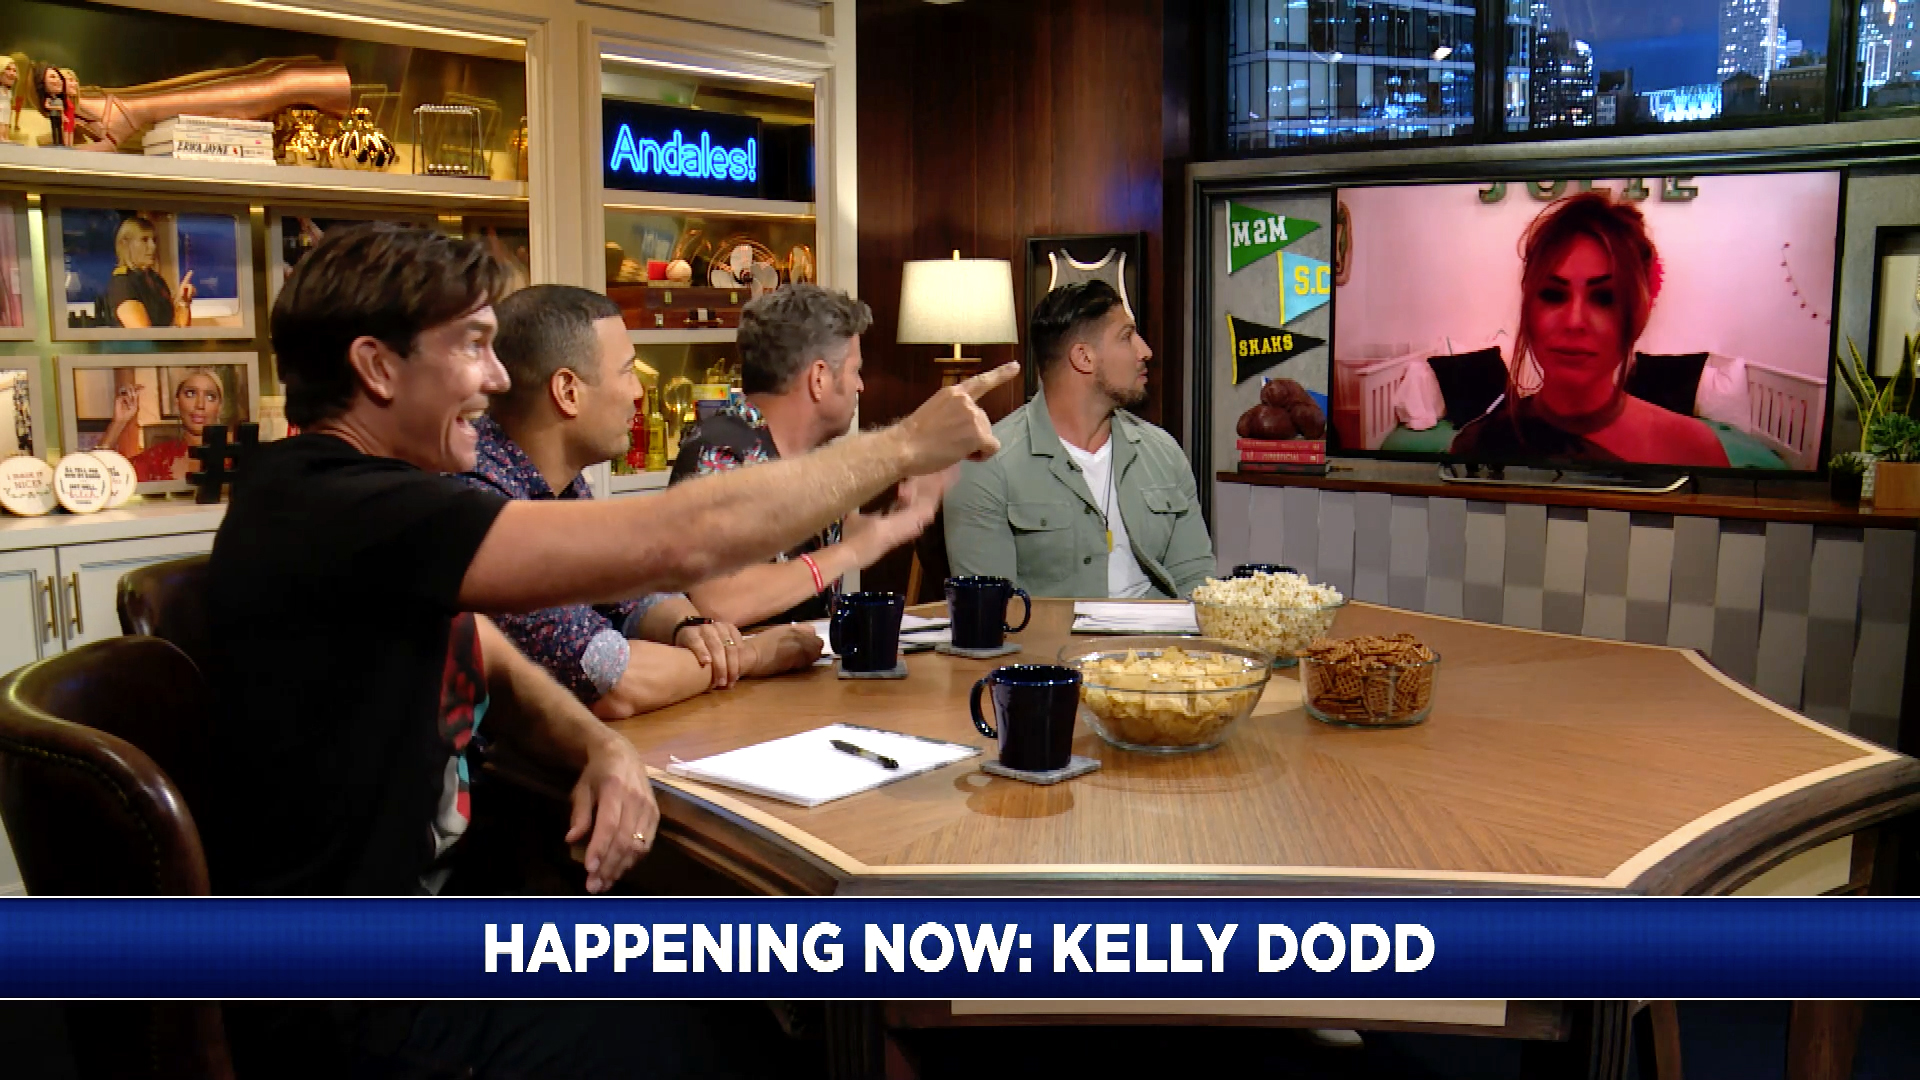 Is Kelly Dodd Hitting on Brendan Schaub?